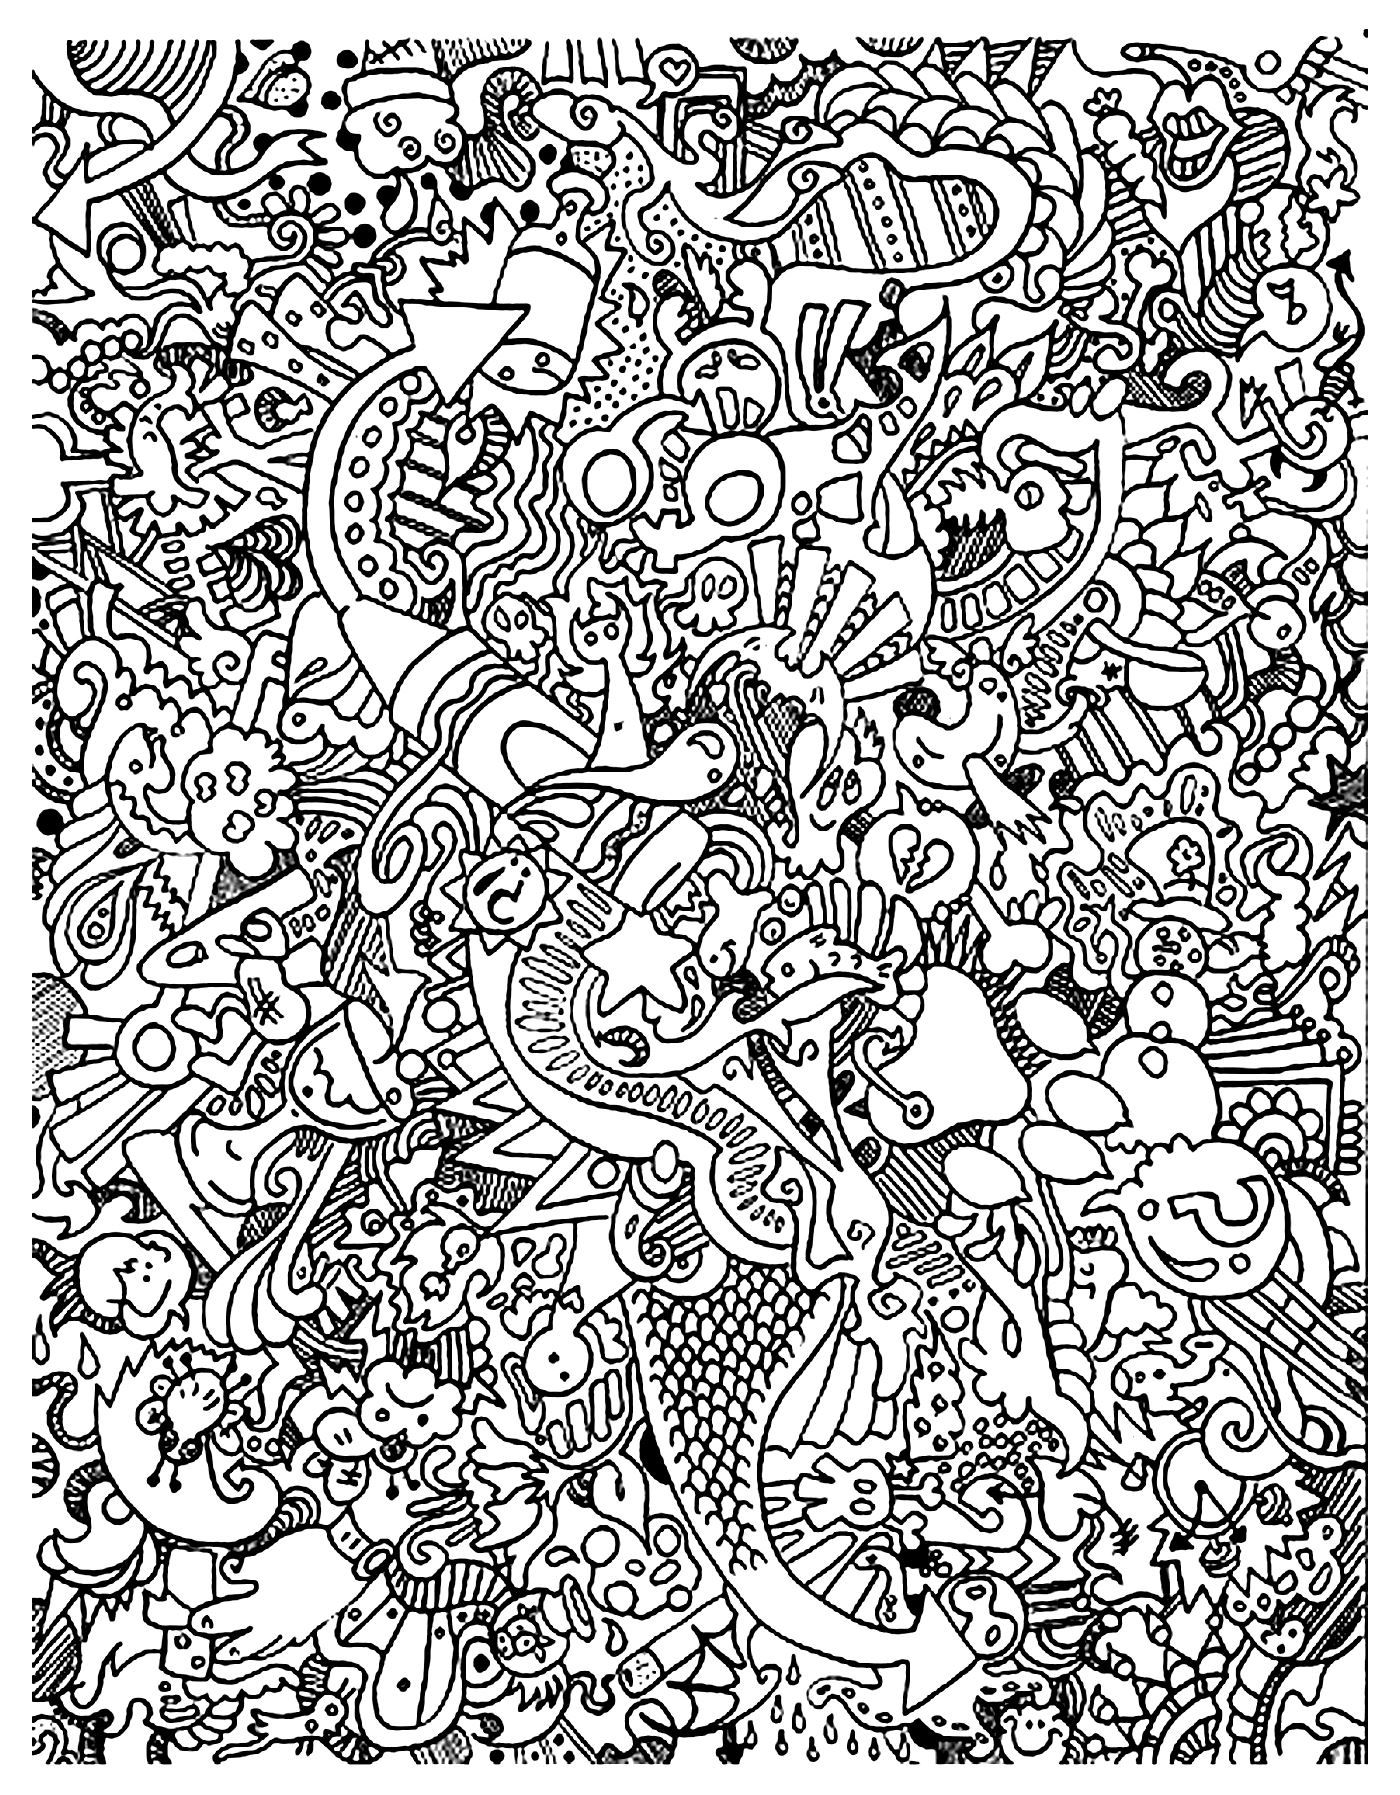 Free coloring page coloringdoodleartdoodling18